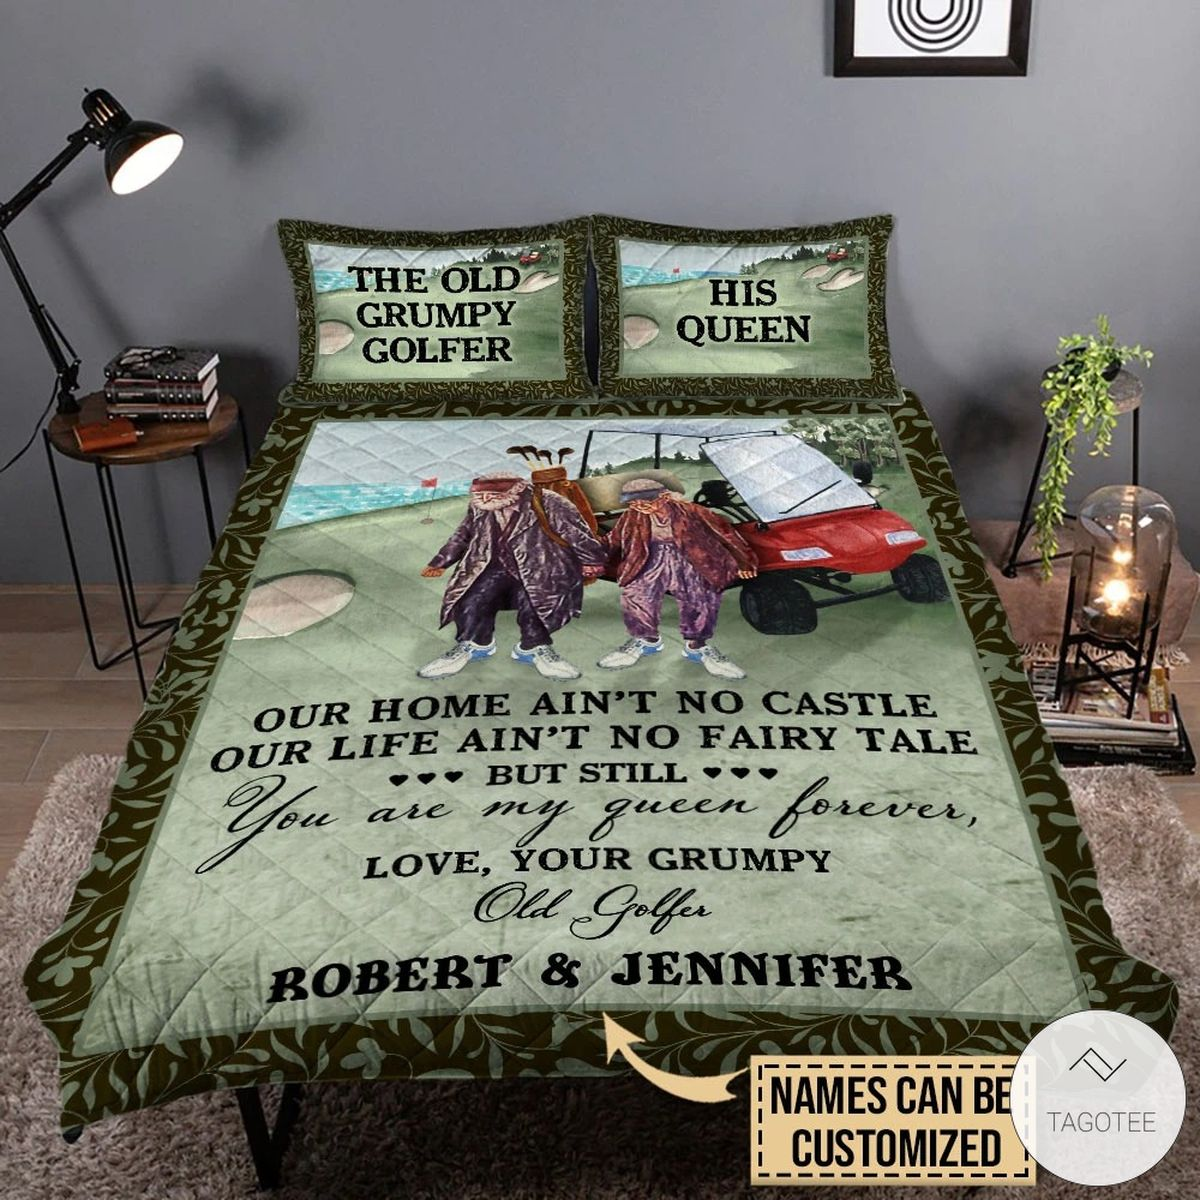 Personalized The Old Grumpy Golf Couple Our Home Ain't No Castle Quilt Bedding Sets